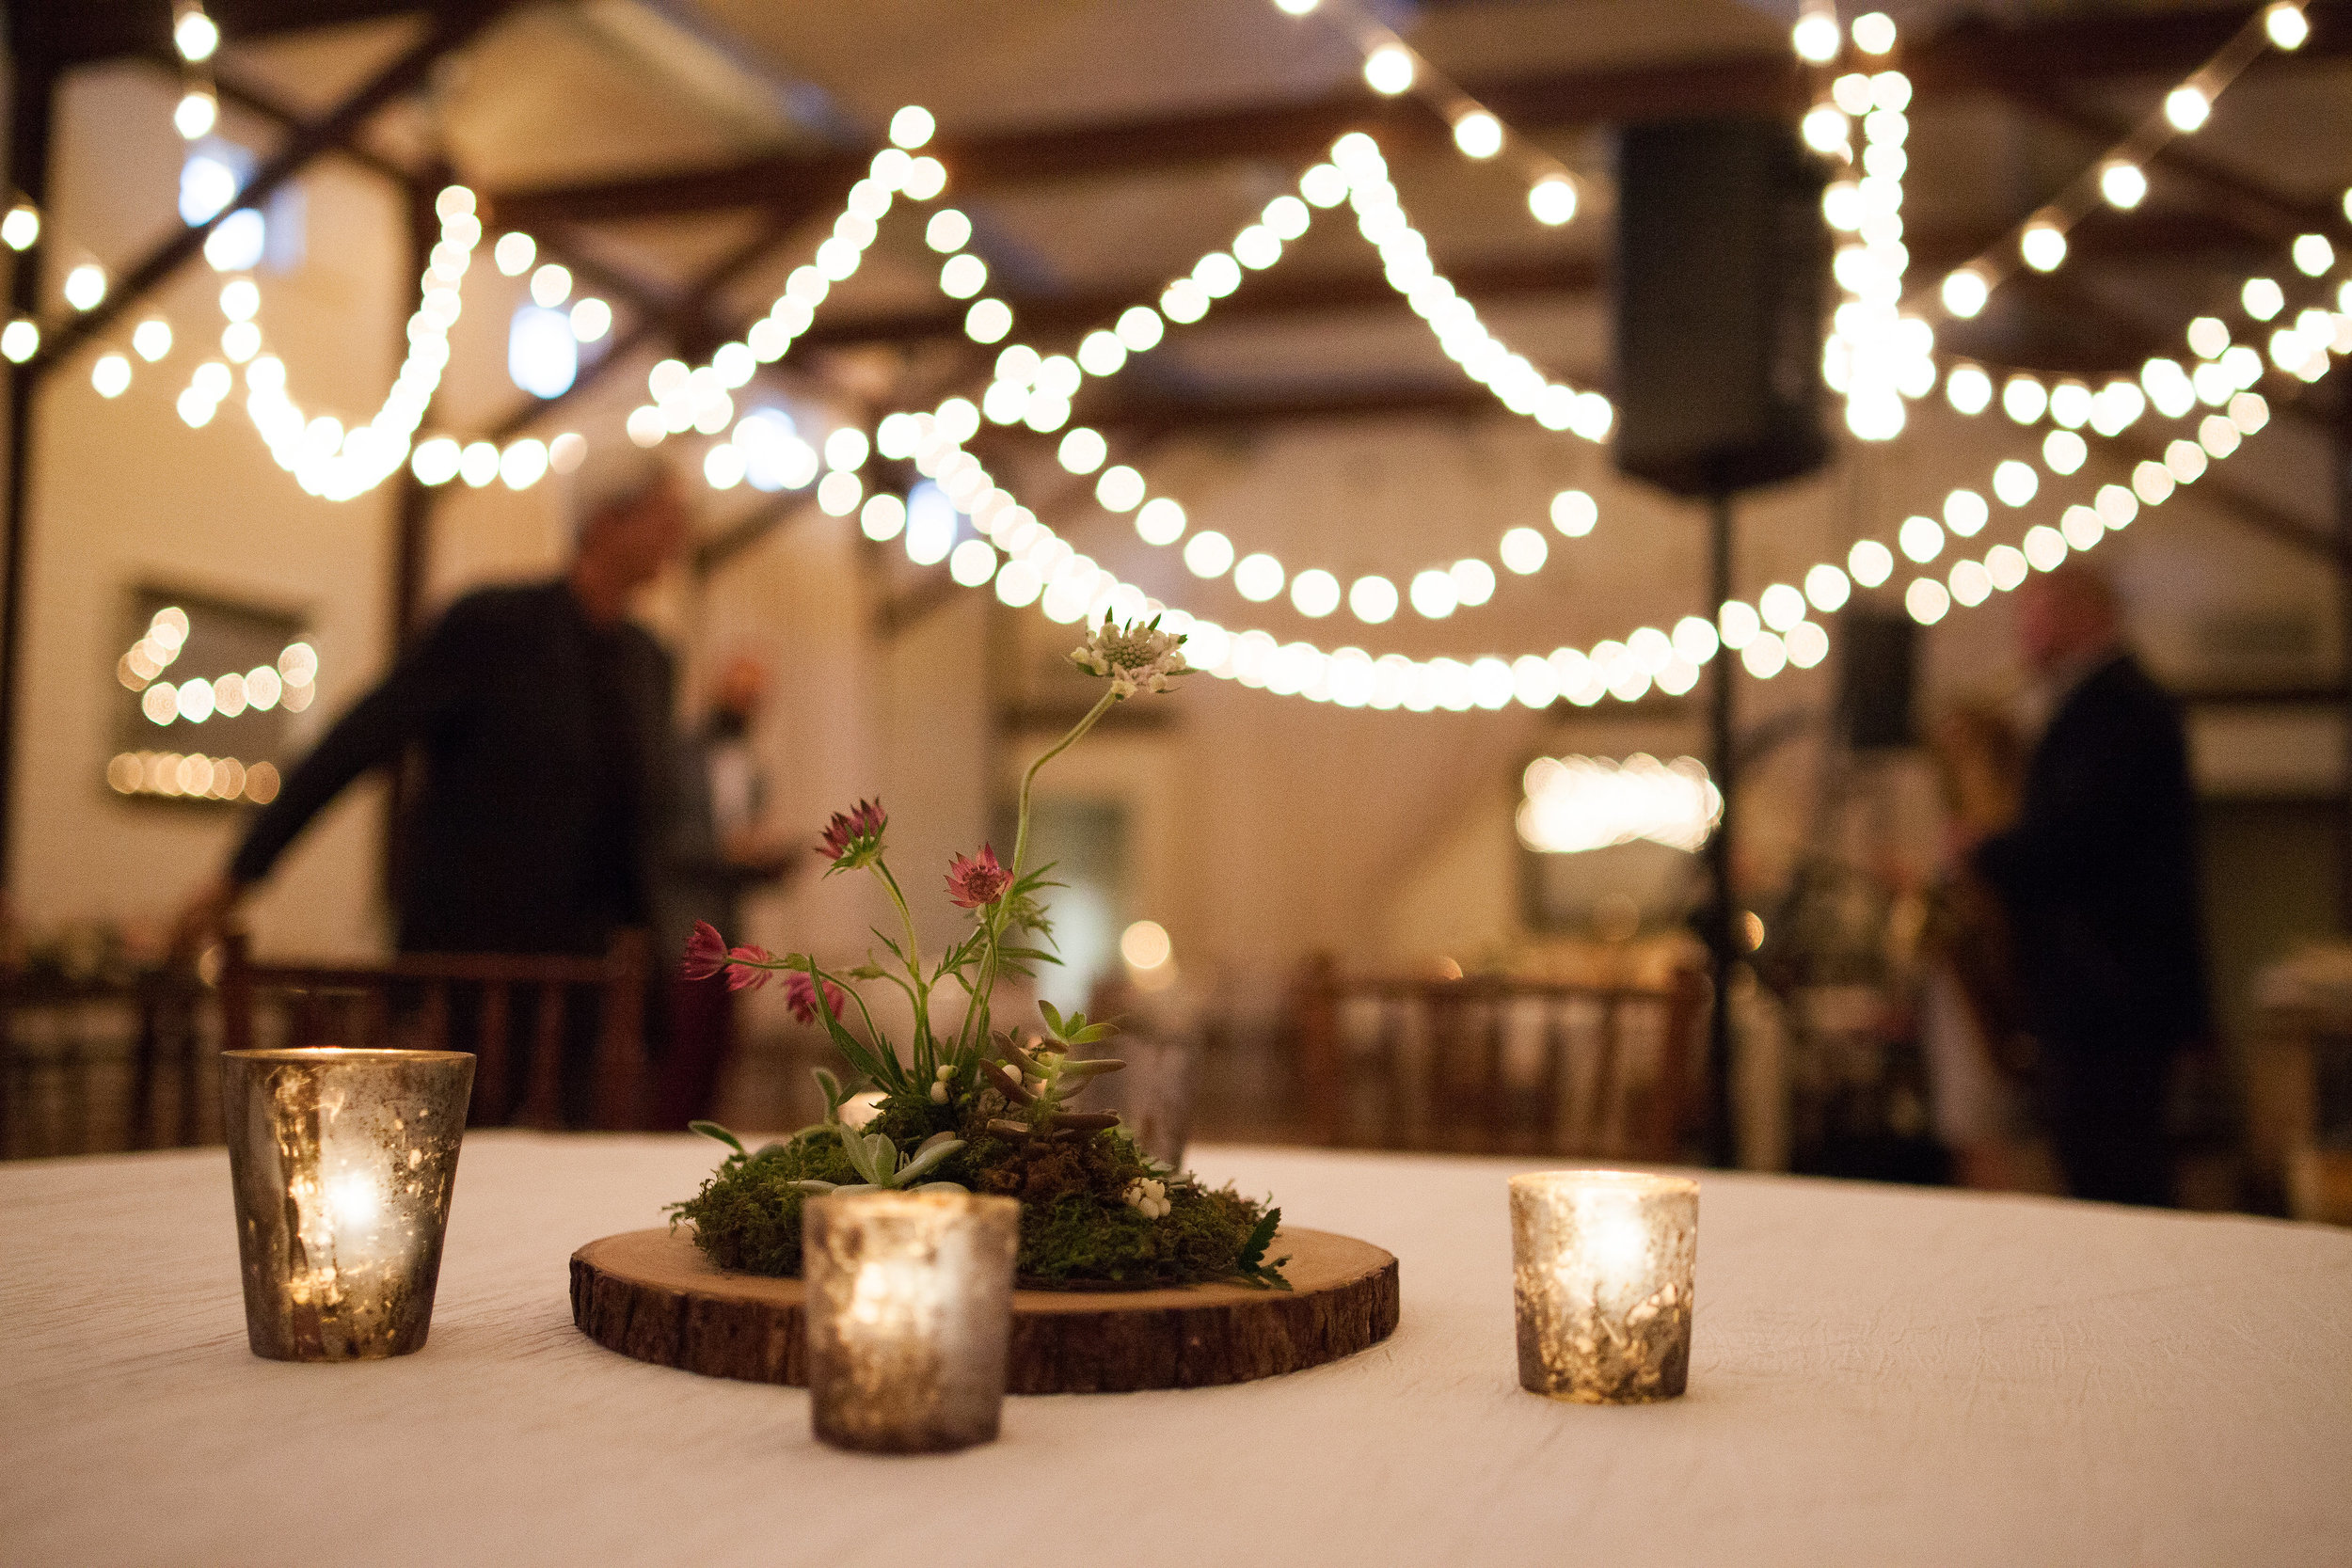 The One Moment Events - Pippin Hill Vineyard Wedding Reception.jpg